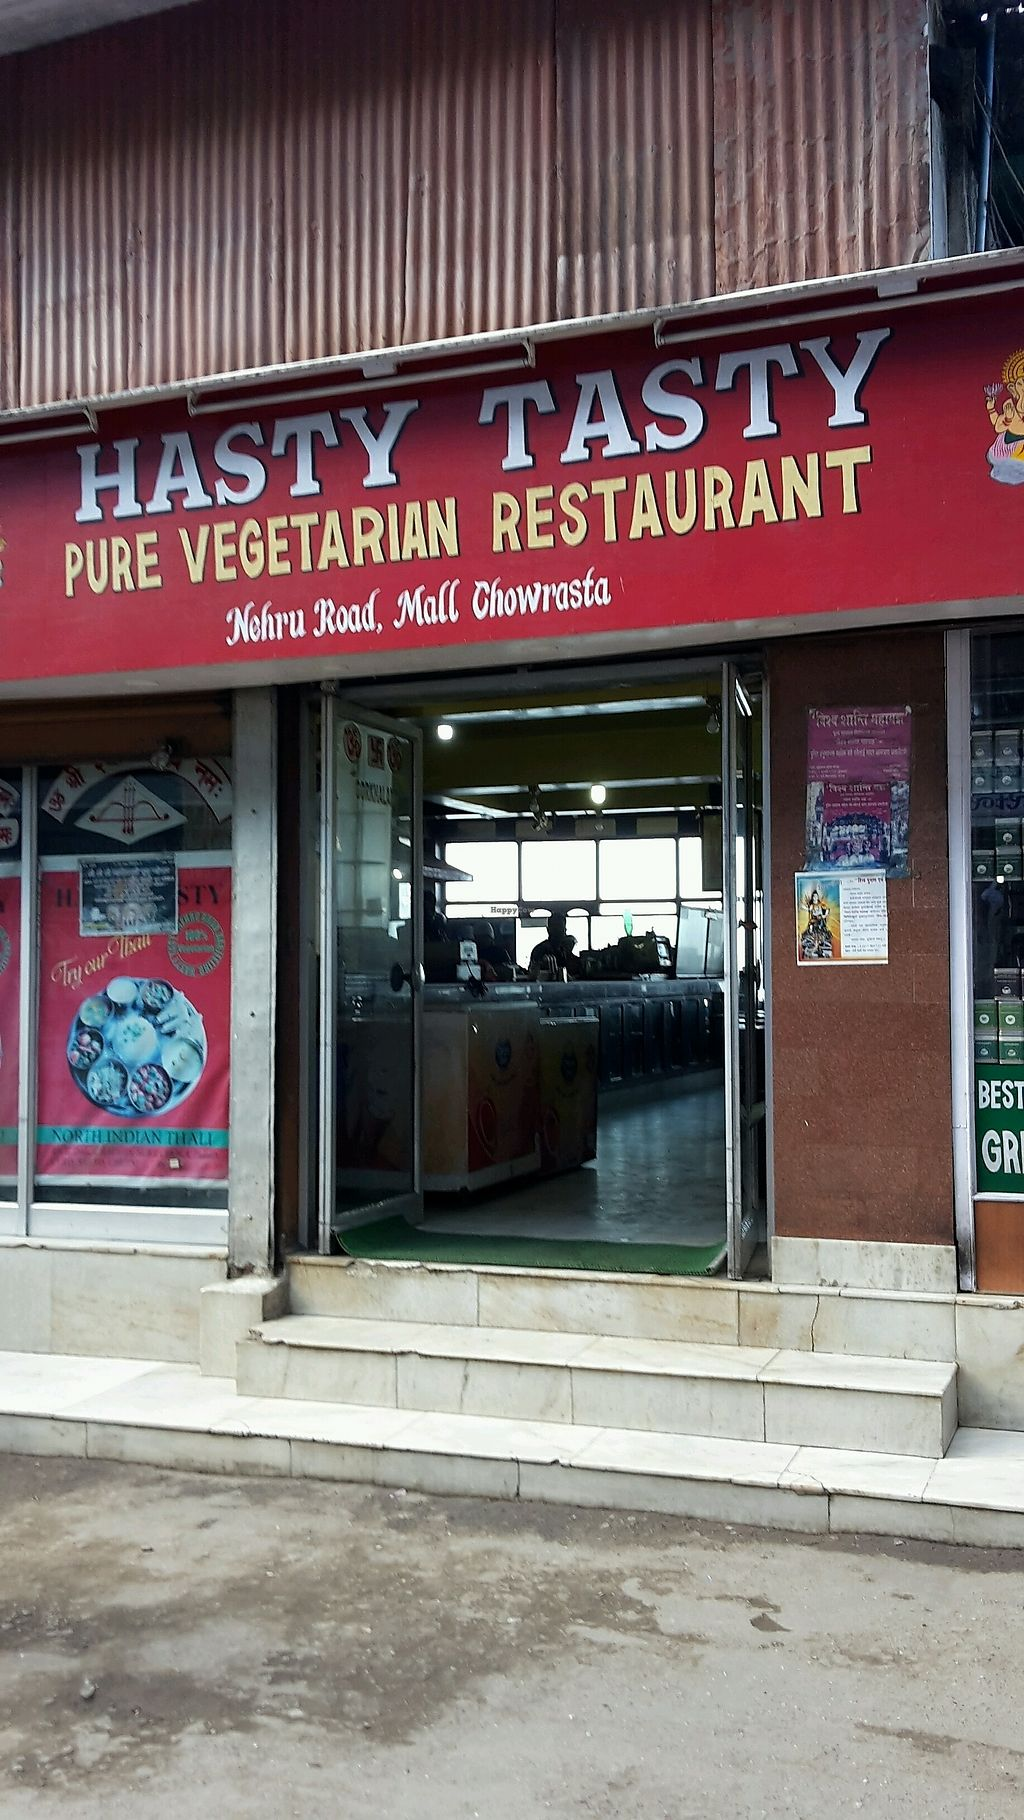 """Photo of Hasty Tasty Restaurant  by <a href=""""/members/profile/vegan_simon"""">vegan_simon</a> <br/>entrance <br/> December 3, 2017  - <a href='/contact/abuse/image/42330/331781'>Report</a>"""